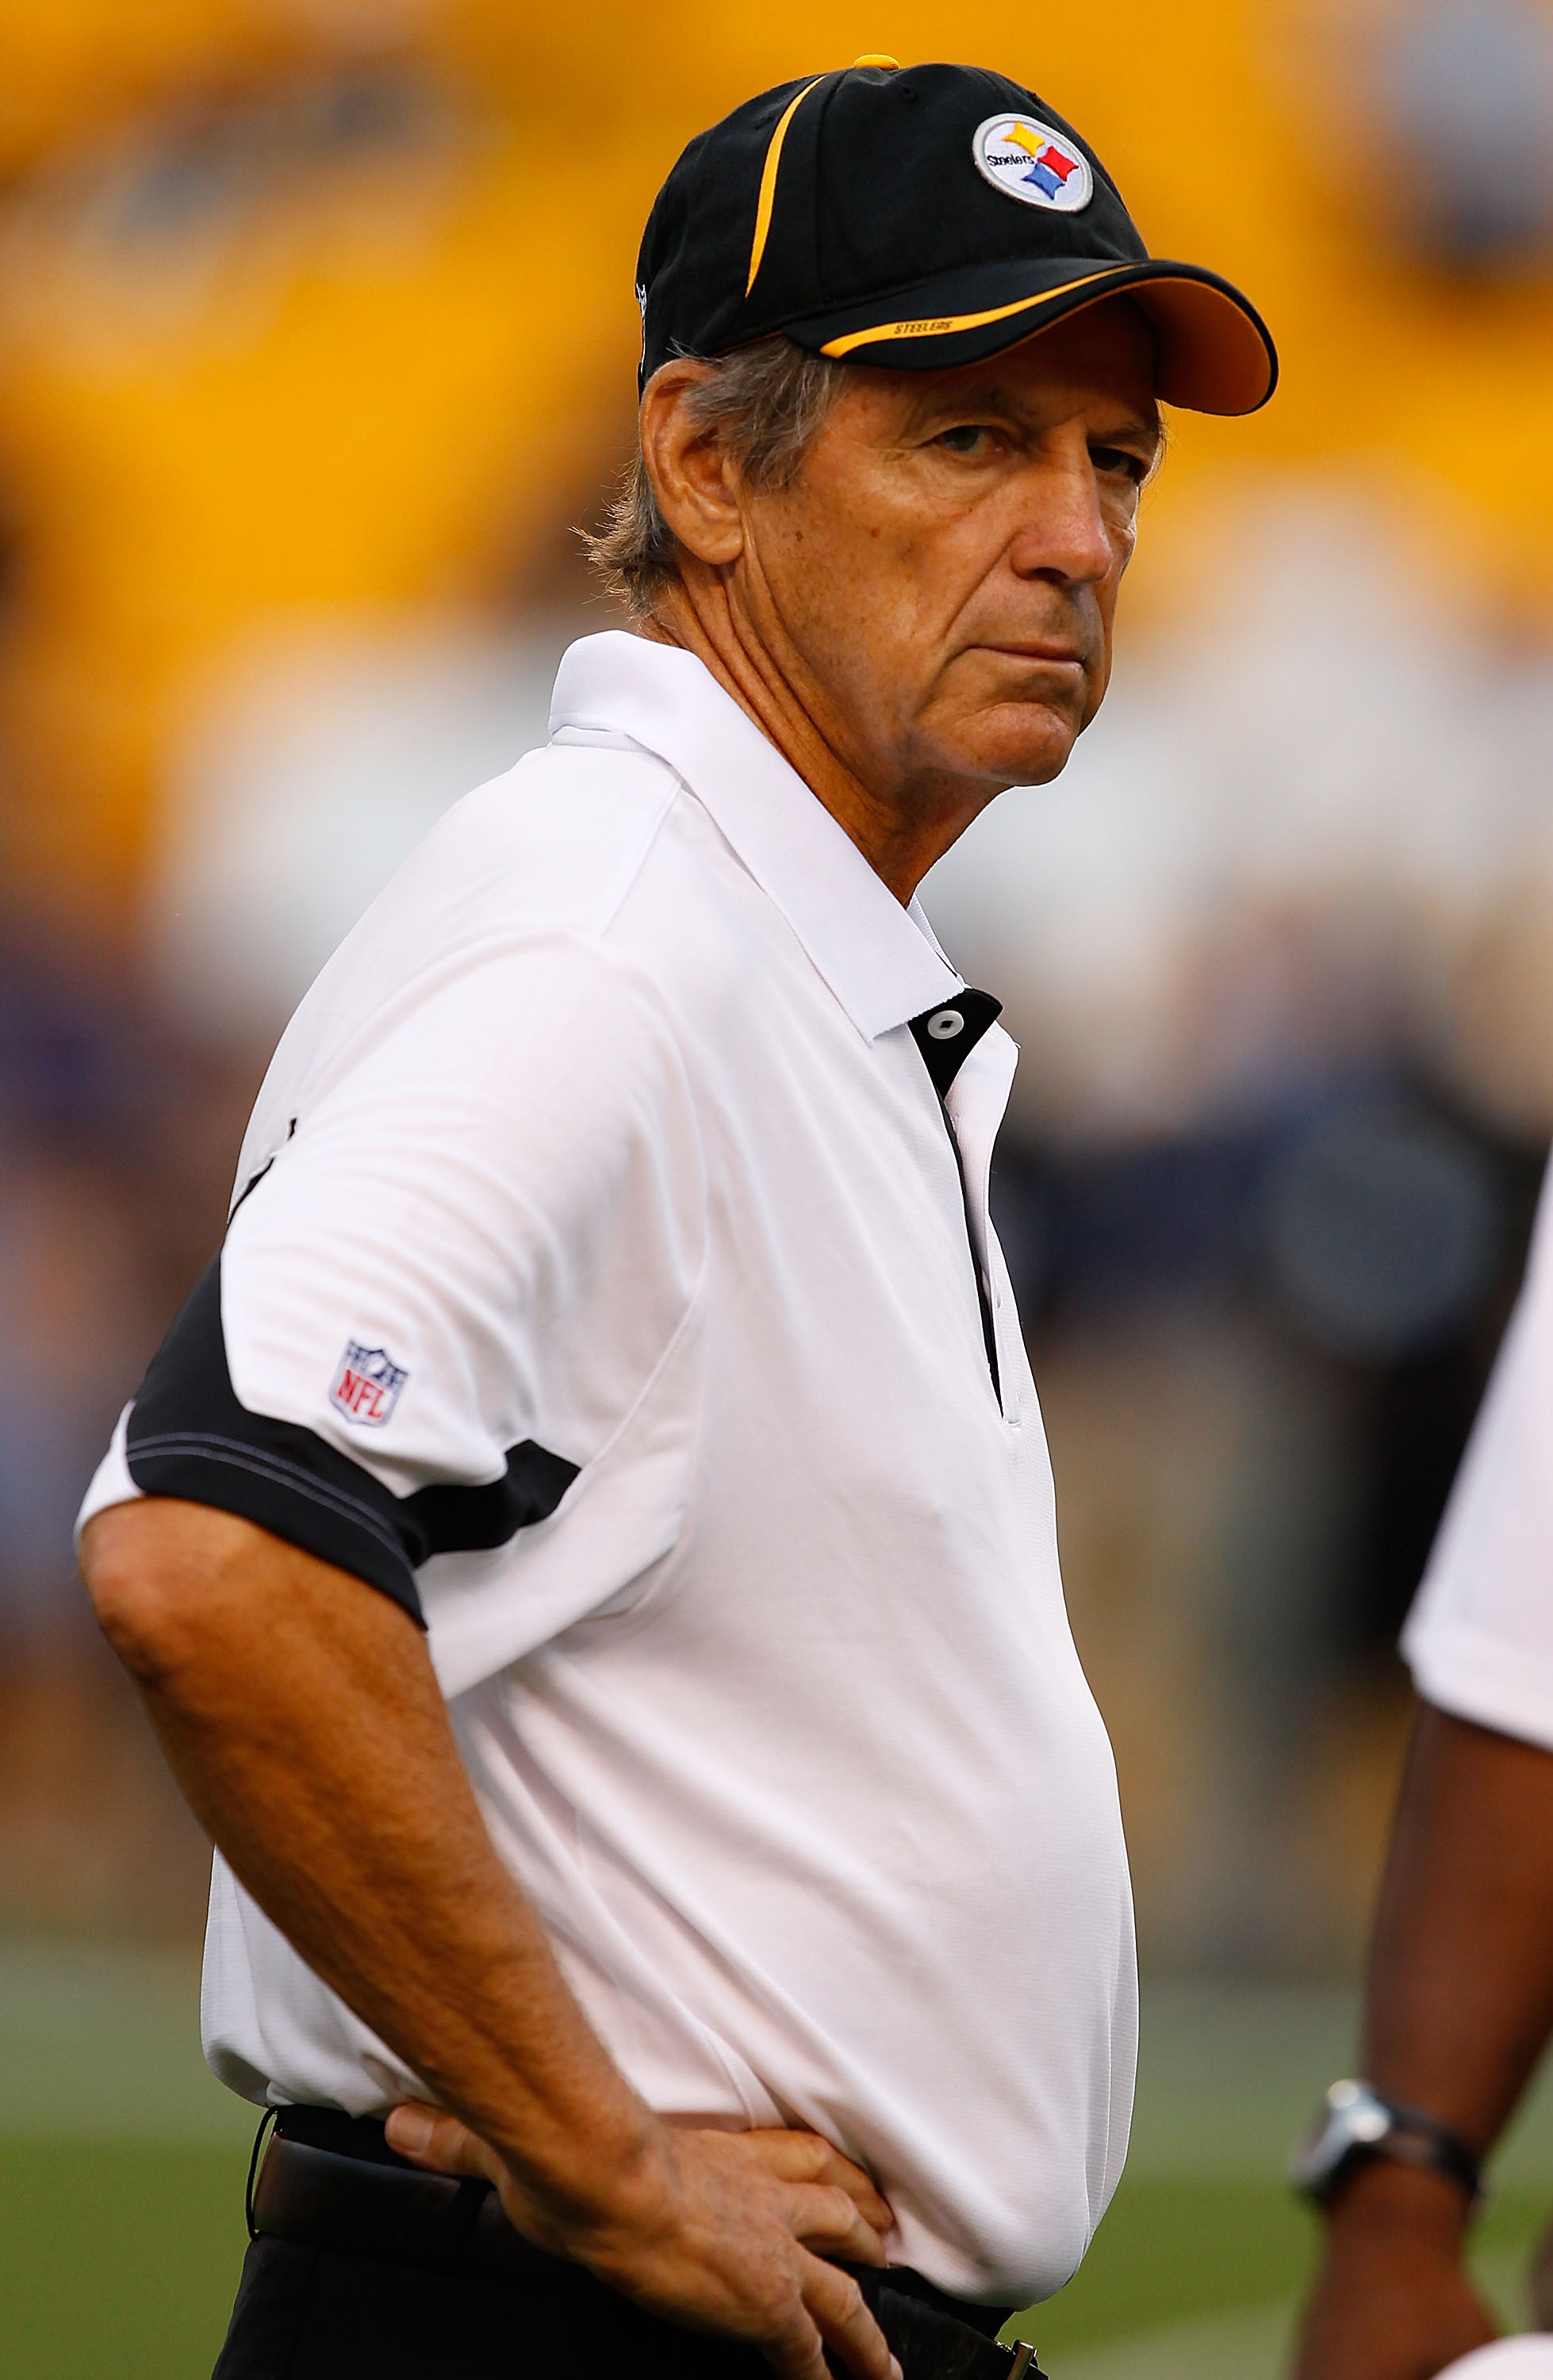 PITTSBURGH - AUGUST 14:  Defensive Coordinator Dick LeBeau of the Pittsburgh Steelers walks around prior to the preseason game against the Detroit Lions  on August 14, 2010 at Heinz Field in Pittsburgh, Pennsylvania.  (Photo by Jared Wickerham/Getty Image